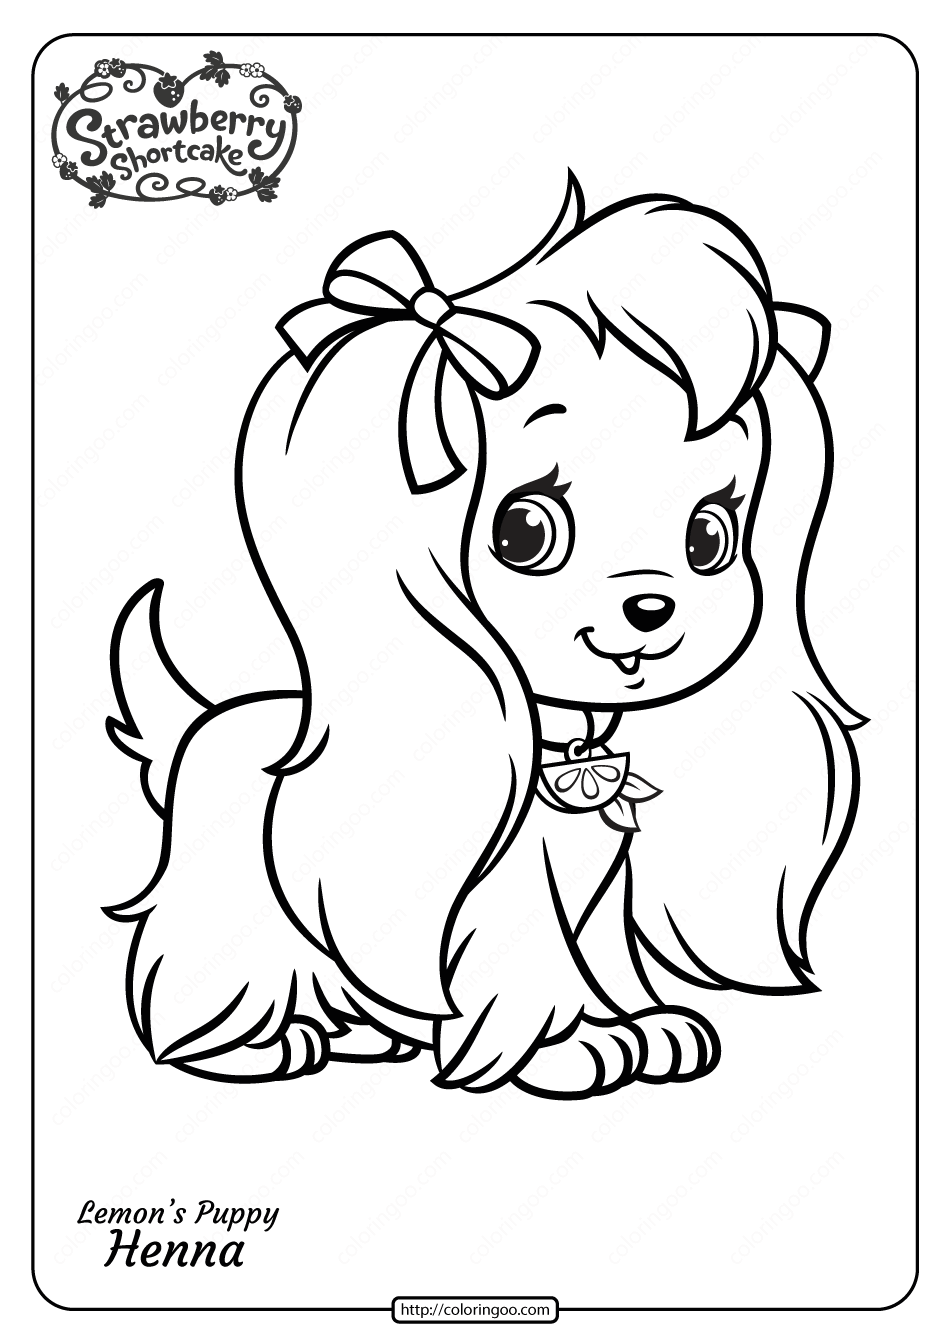 coloring pages to print for free free printable lemon39s puppy henna pdf coloring page to print coloring free pages for